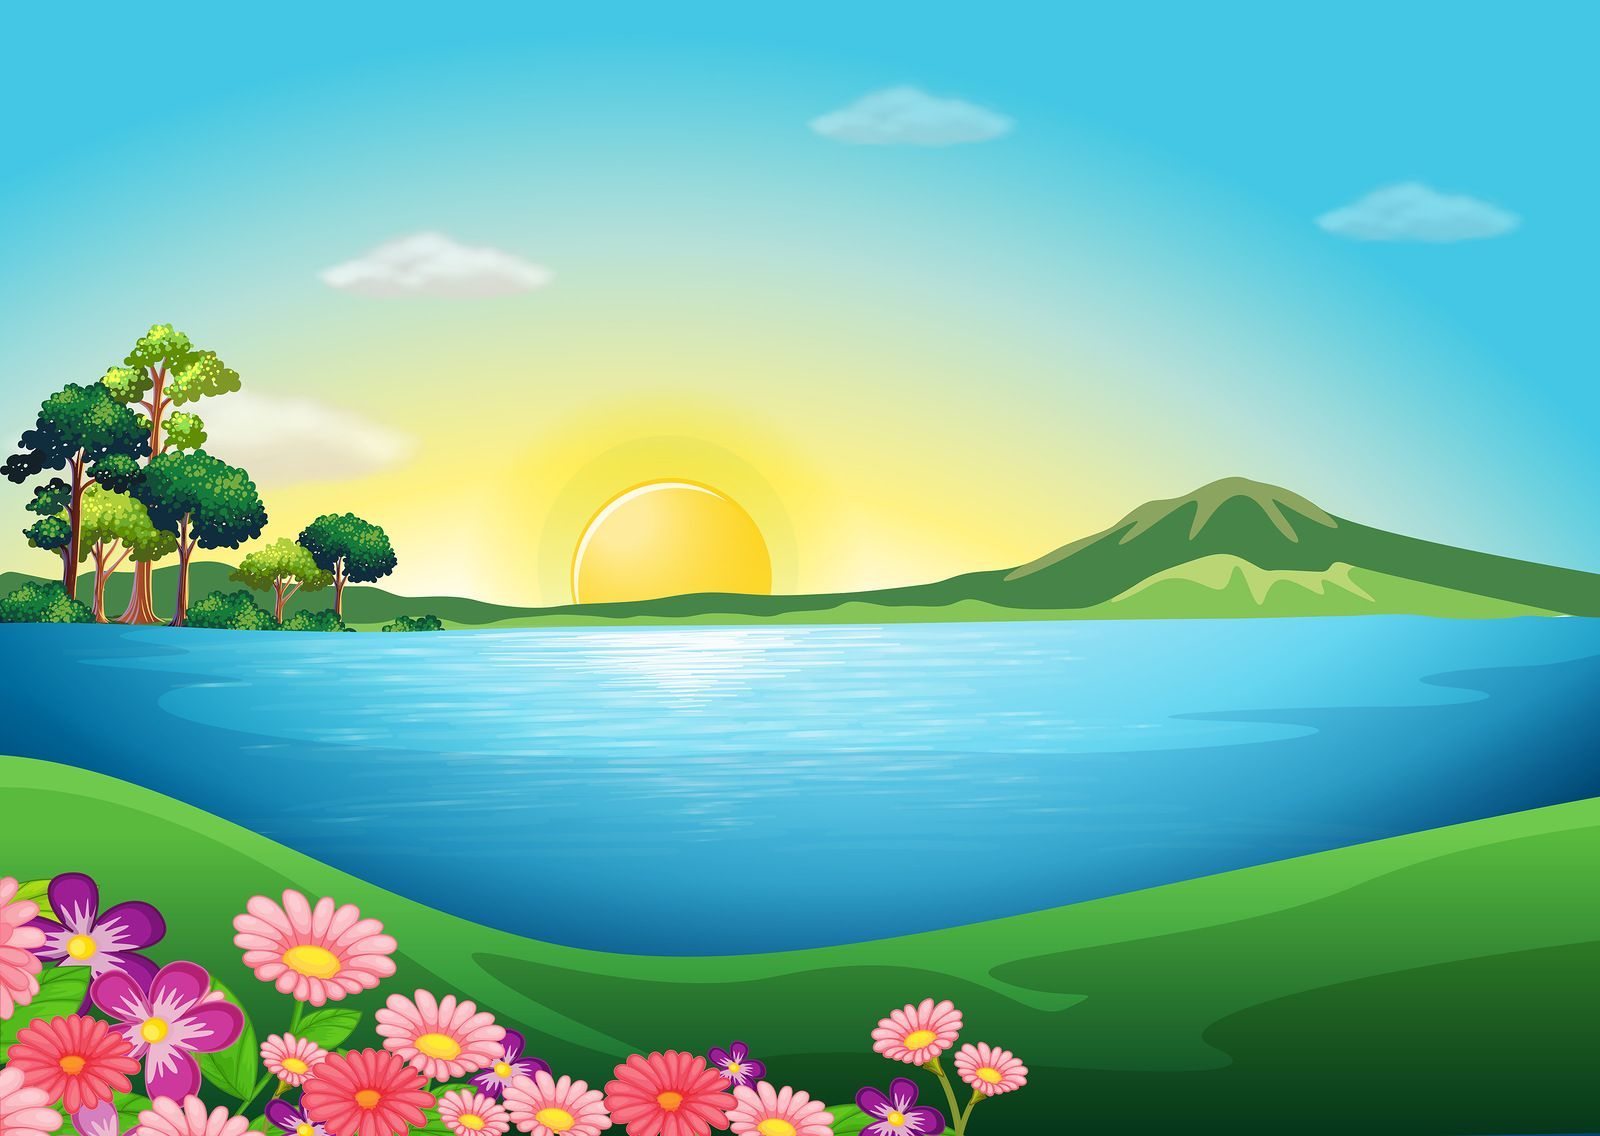 Clipart Images Scenery Background Landscape Paper Owl Cartoon